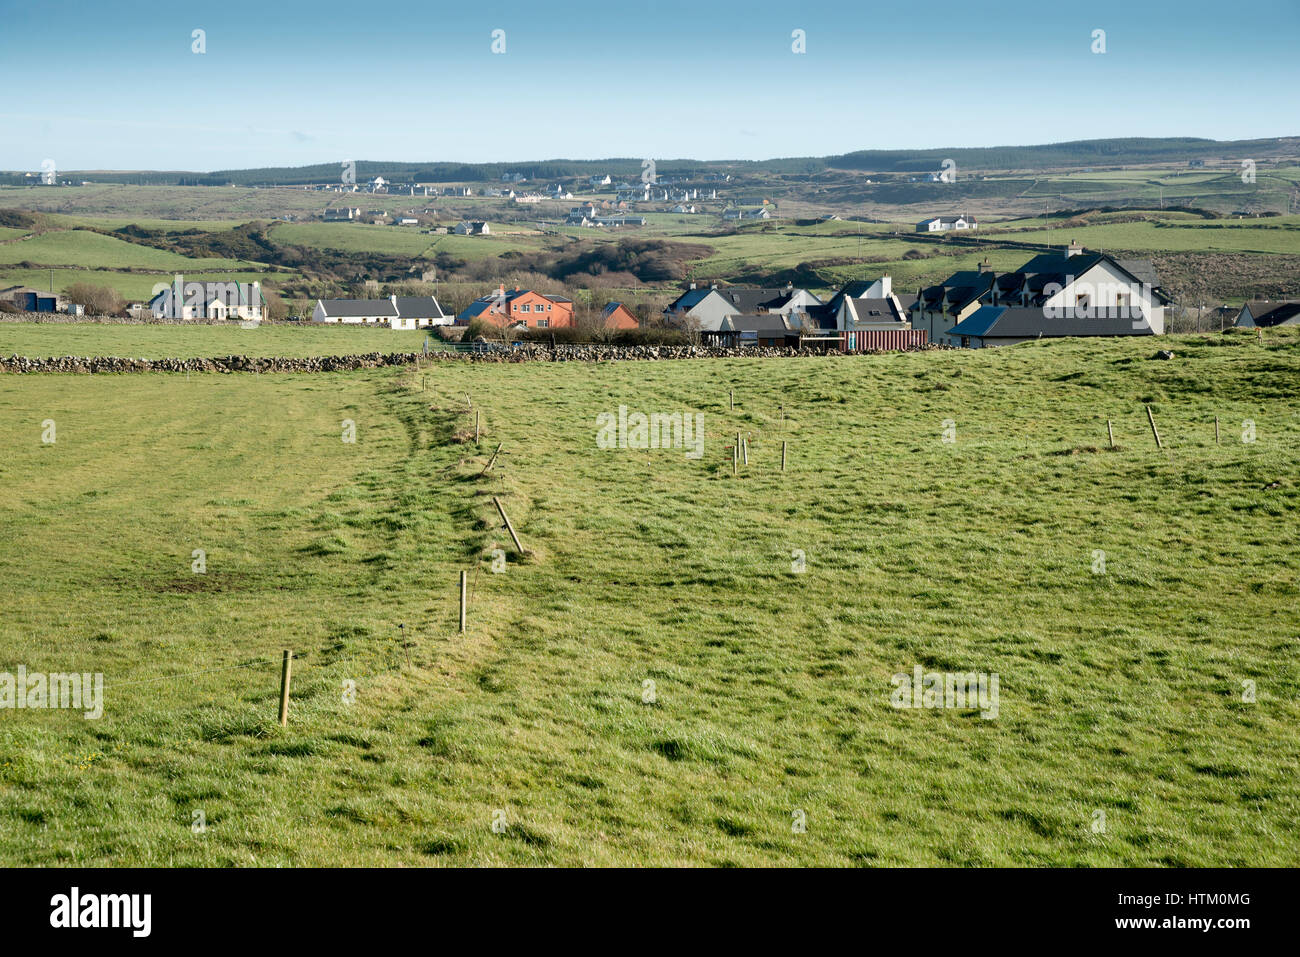 Typical countryside of west coast of Ireland. - Stock Image